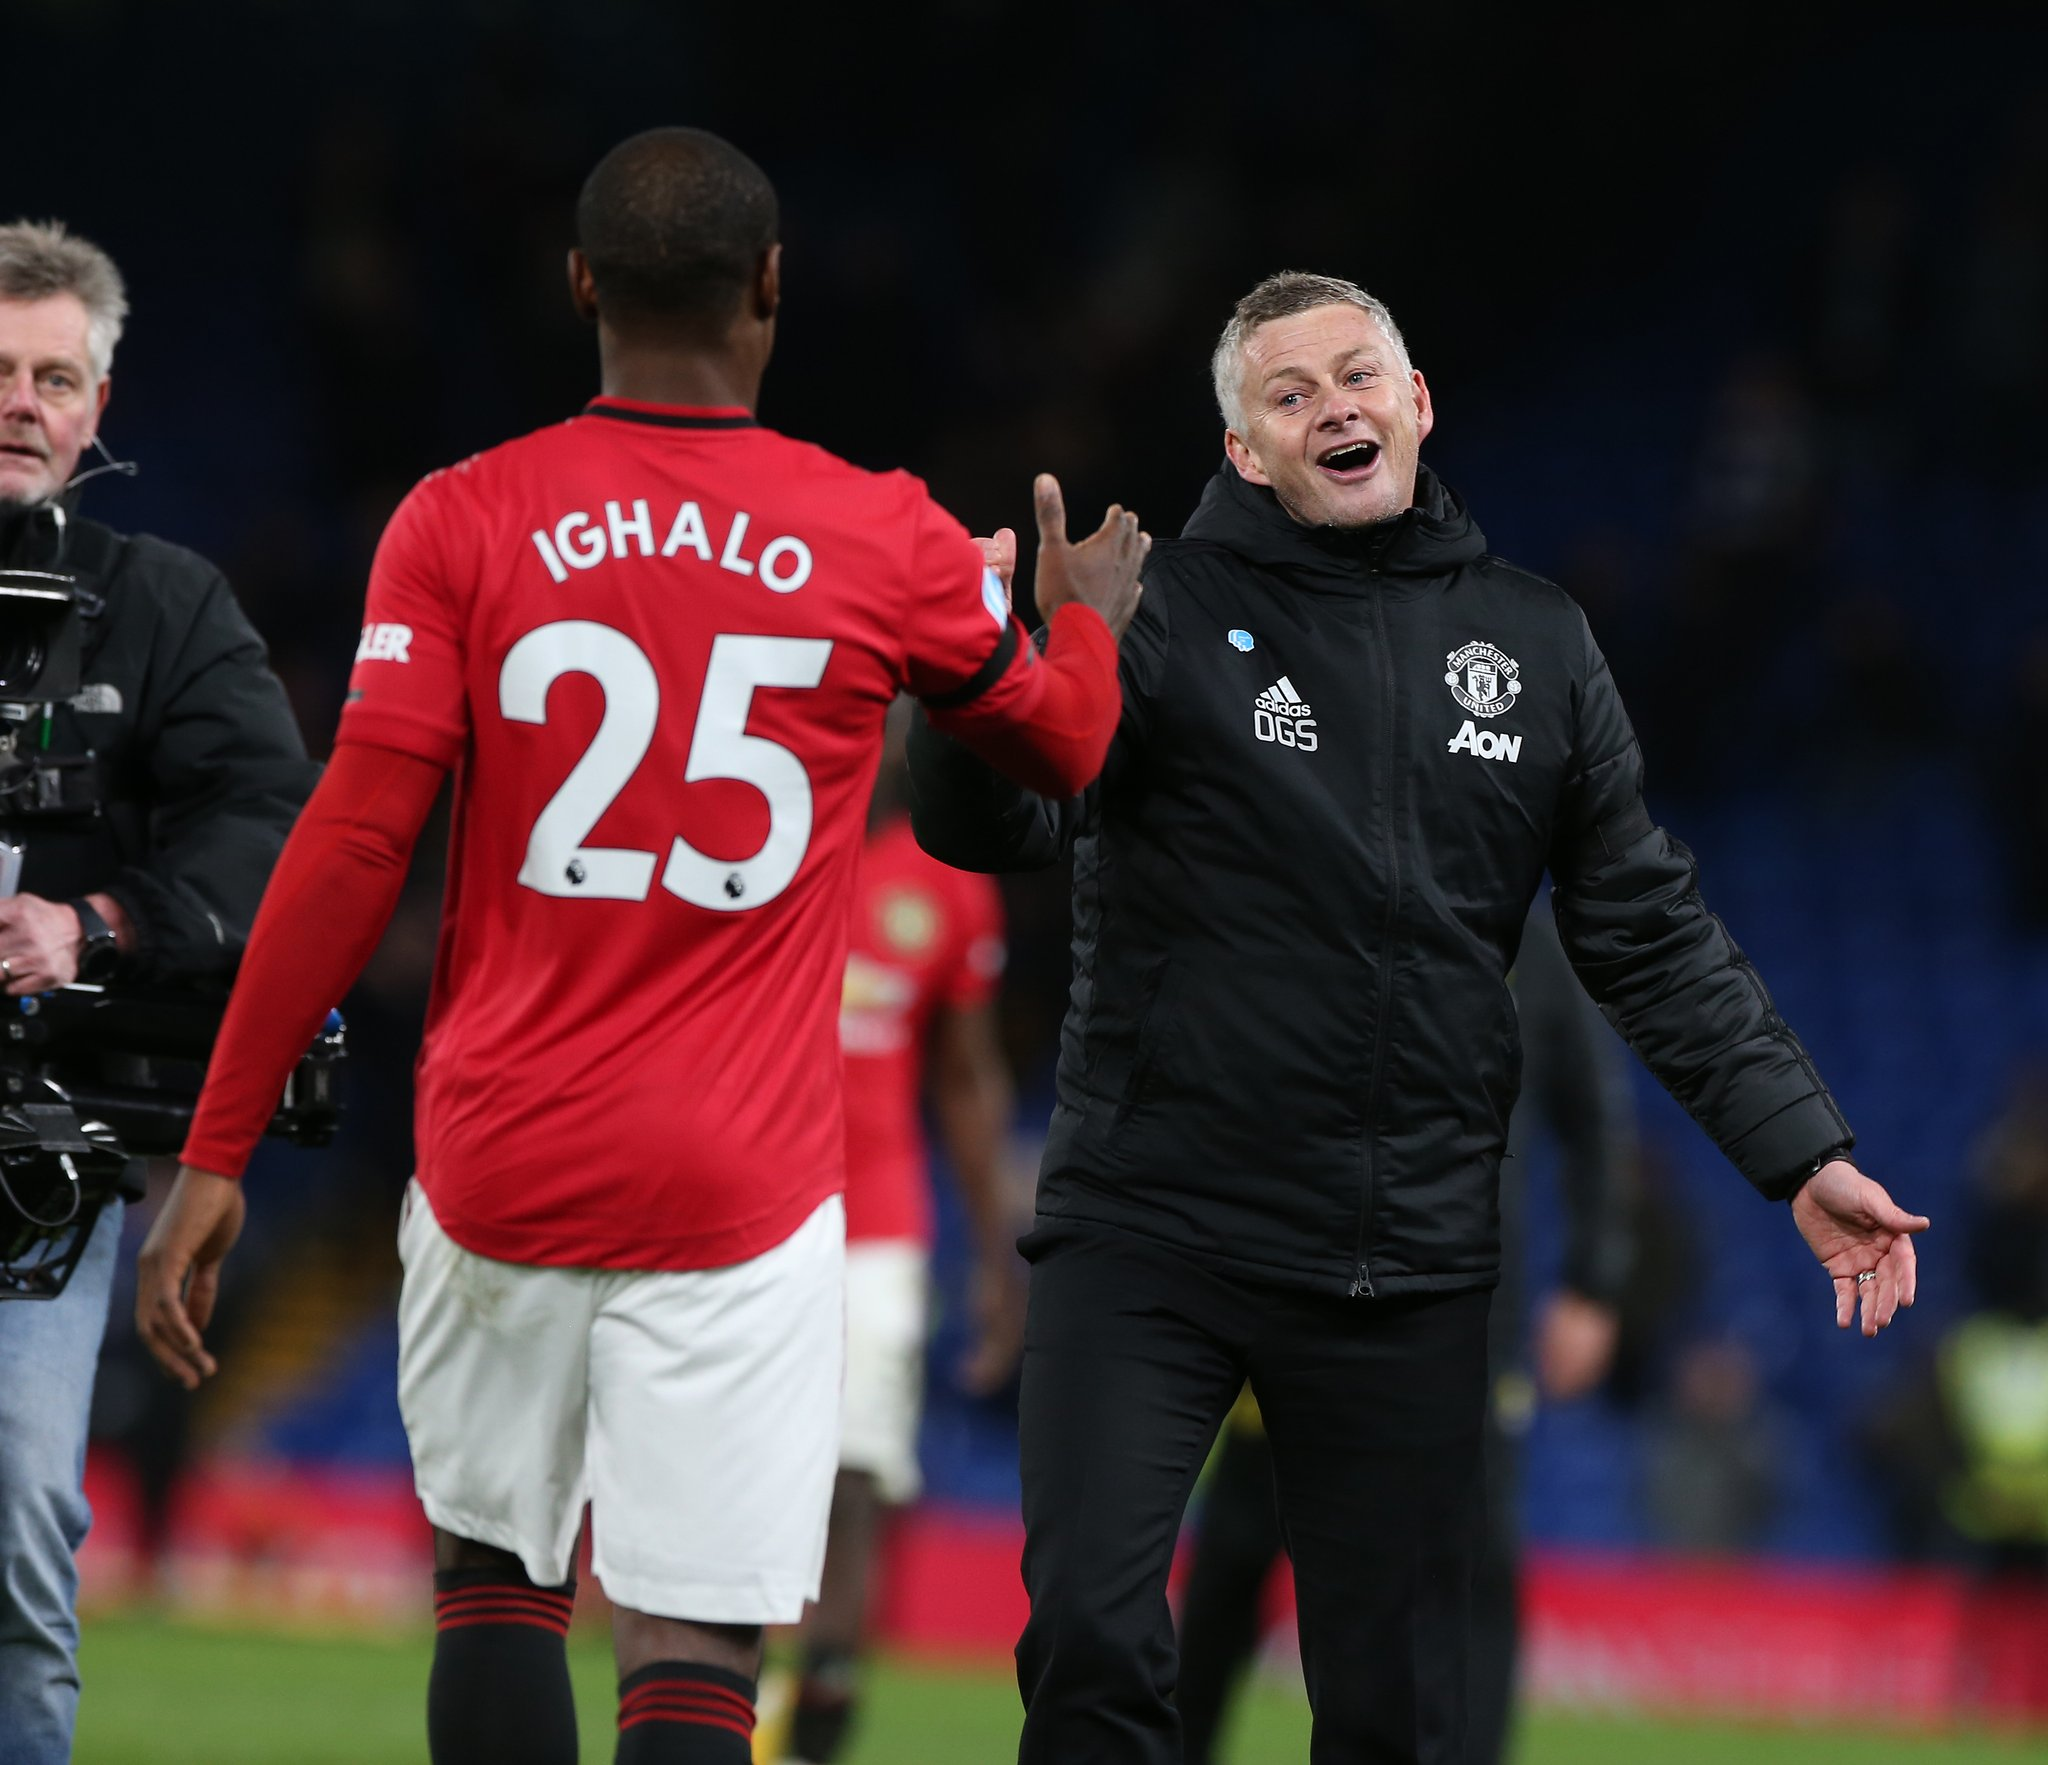 Ighalo Gets Good Ratings In Man United Debut vs Chelsea